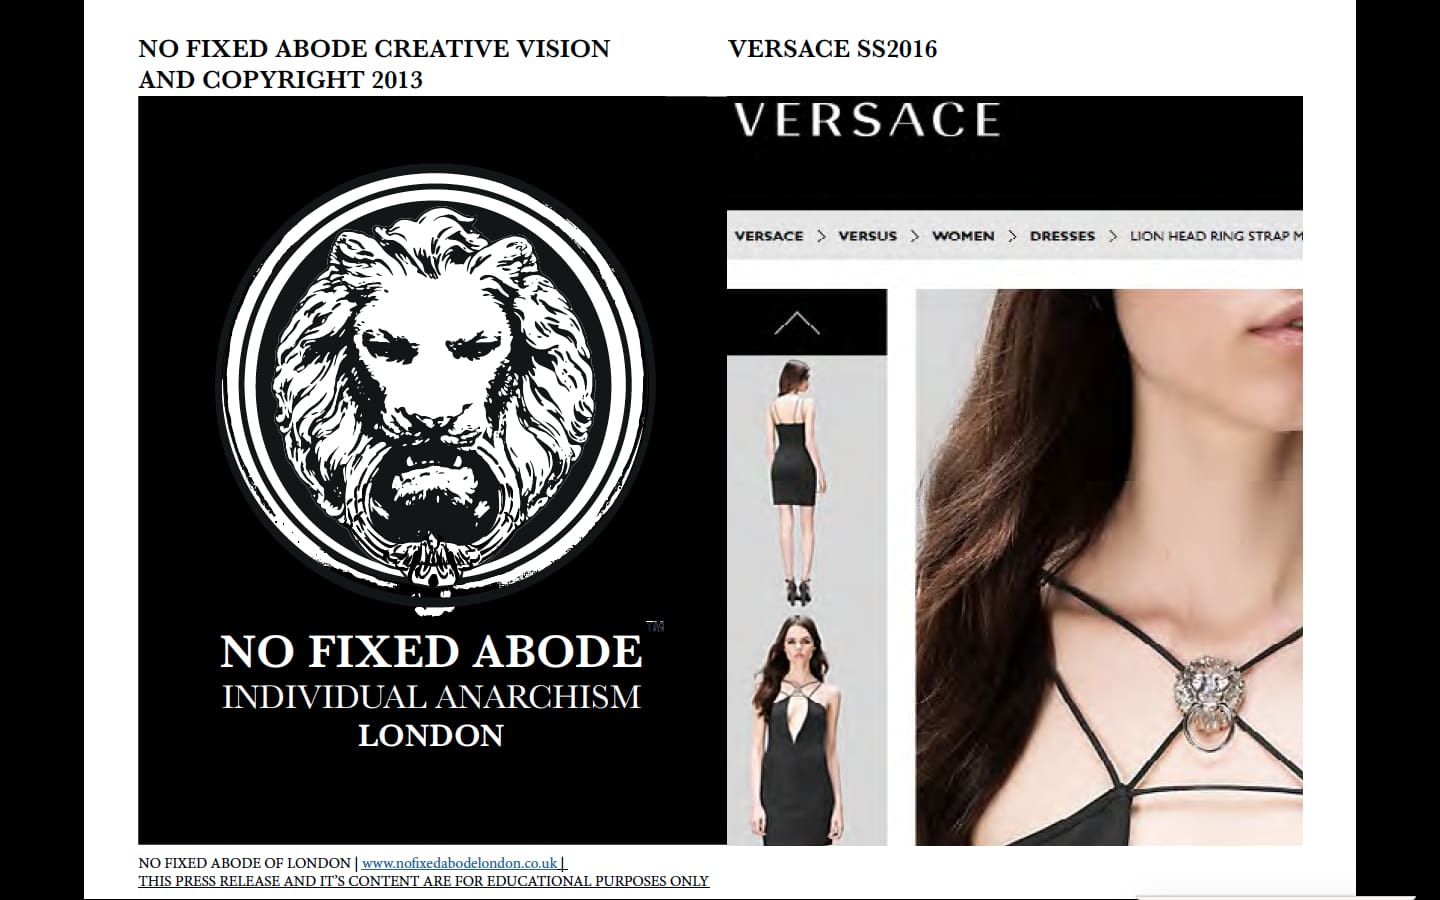 Versace - Have They Run Out Of Ideas